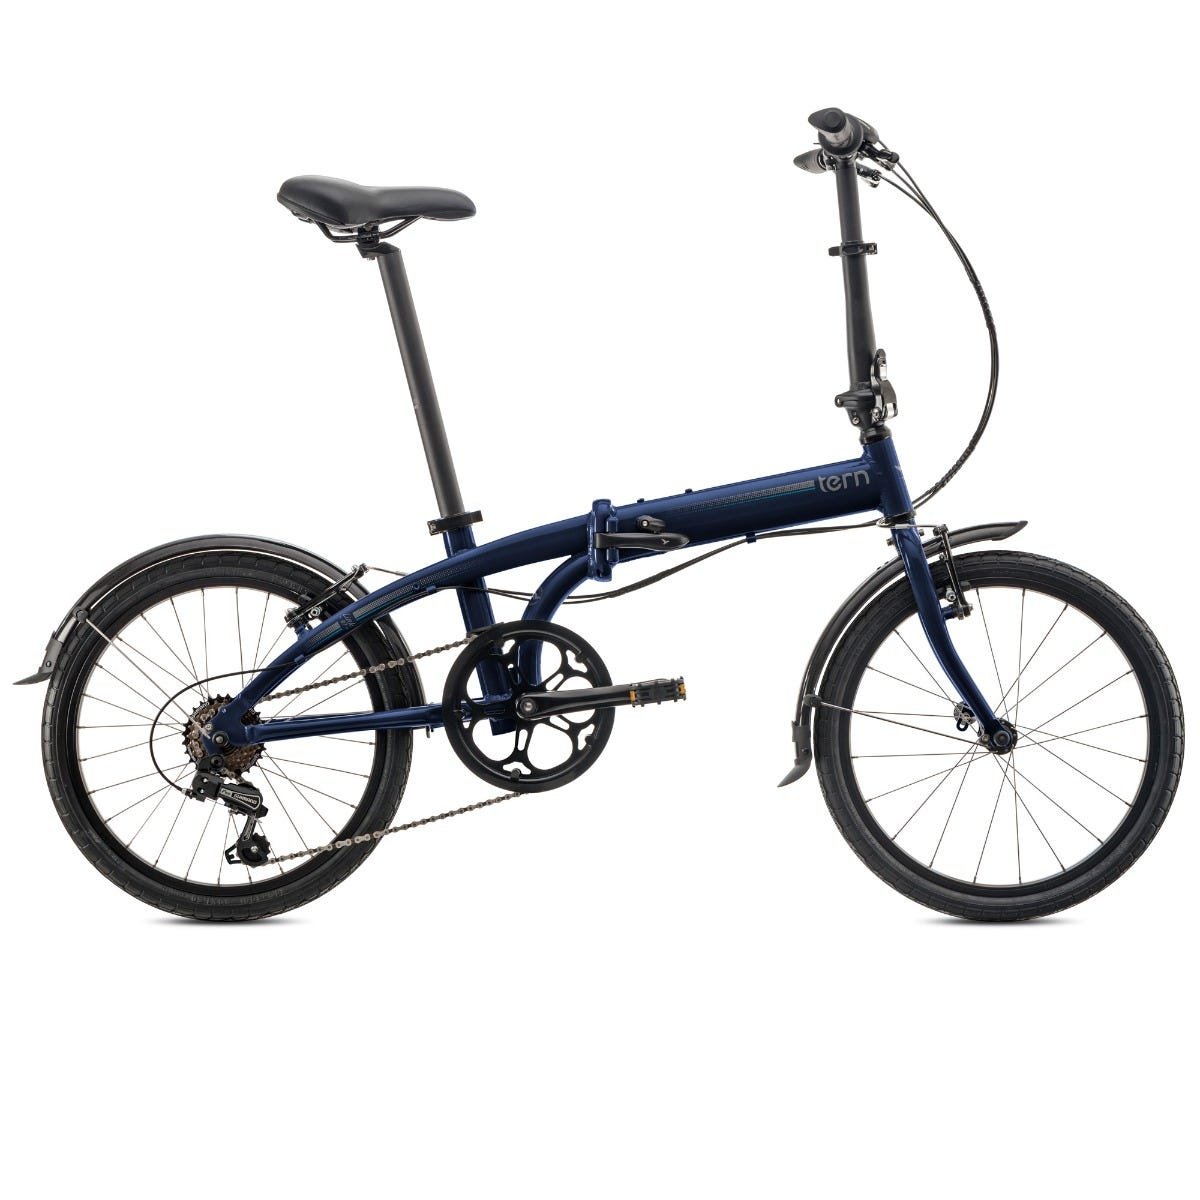 "Tern Link B7 20"" 7Spd 2020 Folding Bike Midnight Blue"